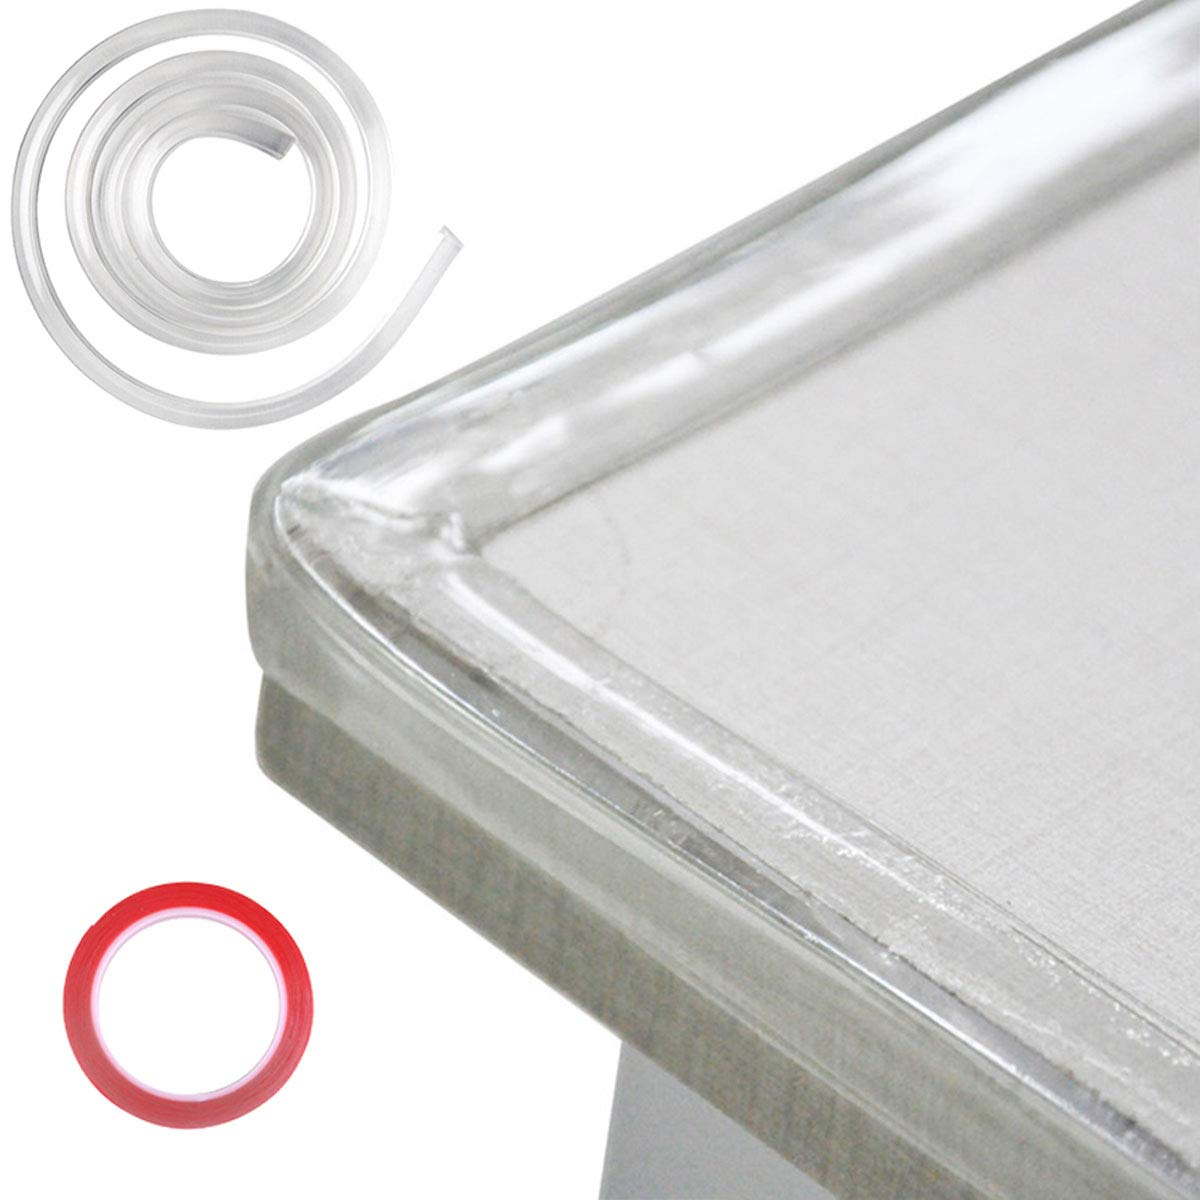 DricRoda Furniture Table Edge Protectors, 20ft Transparent Corner Guards, Baby Proofing Clear Corner Protector, Soft Silicone Bumper Strip with Double-Sided Tape for Cabinets Drawers Sharp Corners